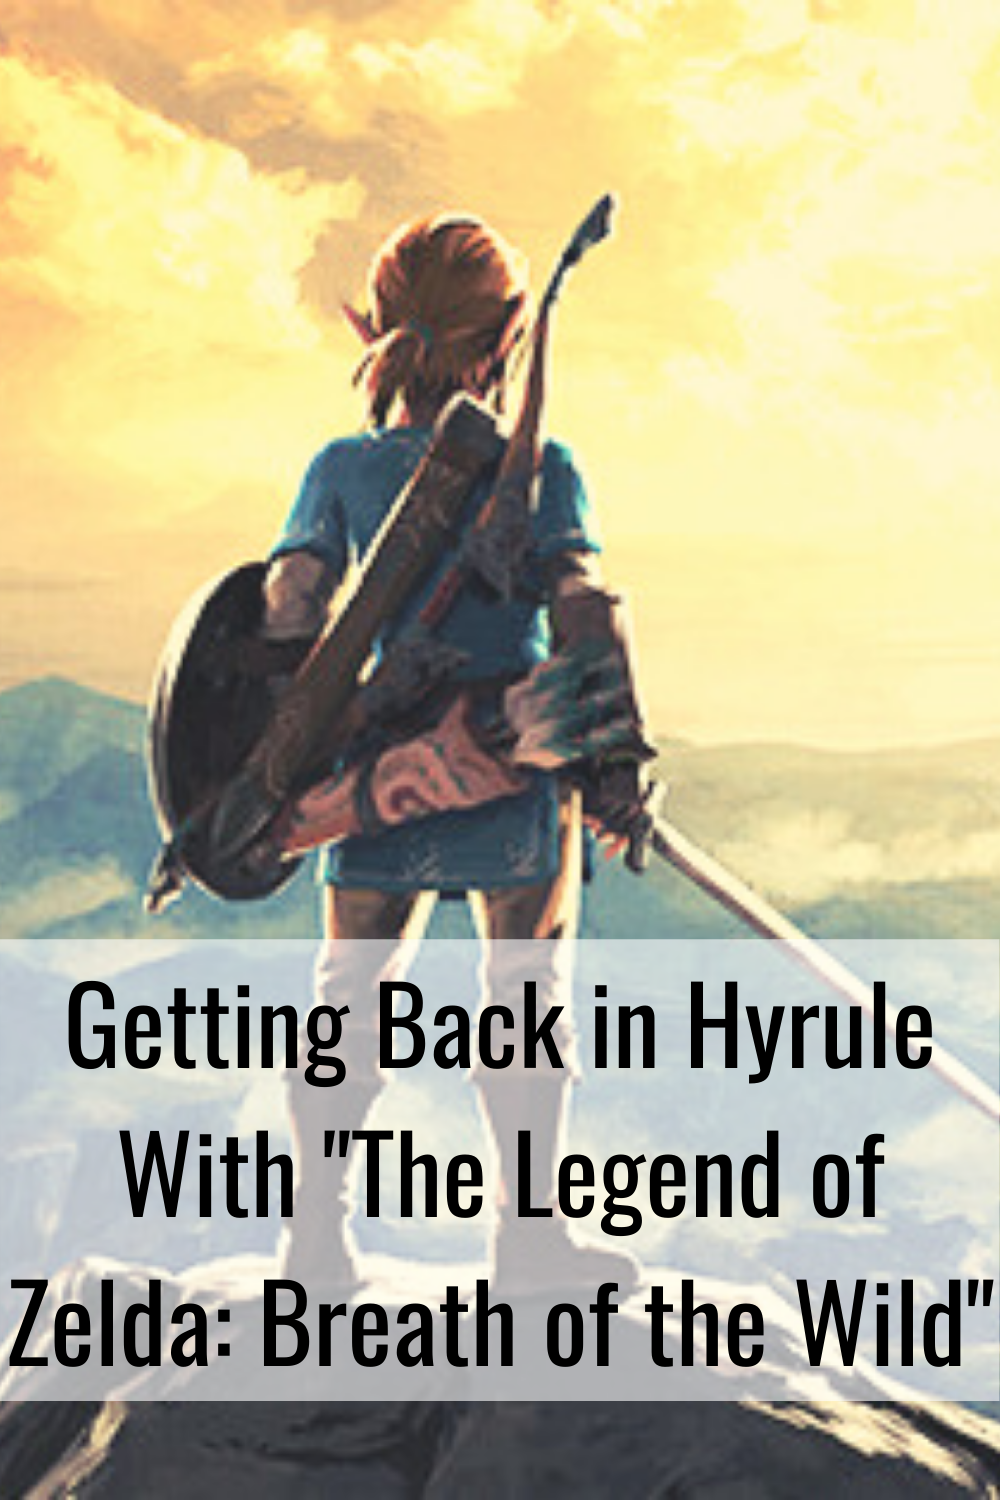 """Getting Back in Hyrule With """"The Legend of Zelda: Breath of the Wild"""""""